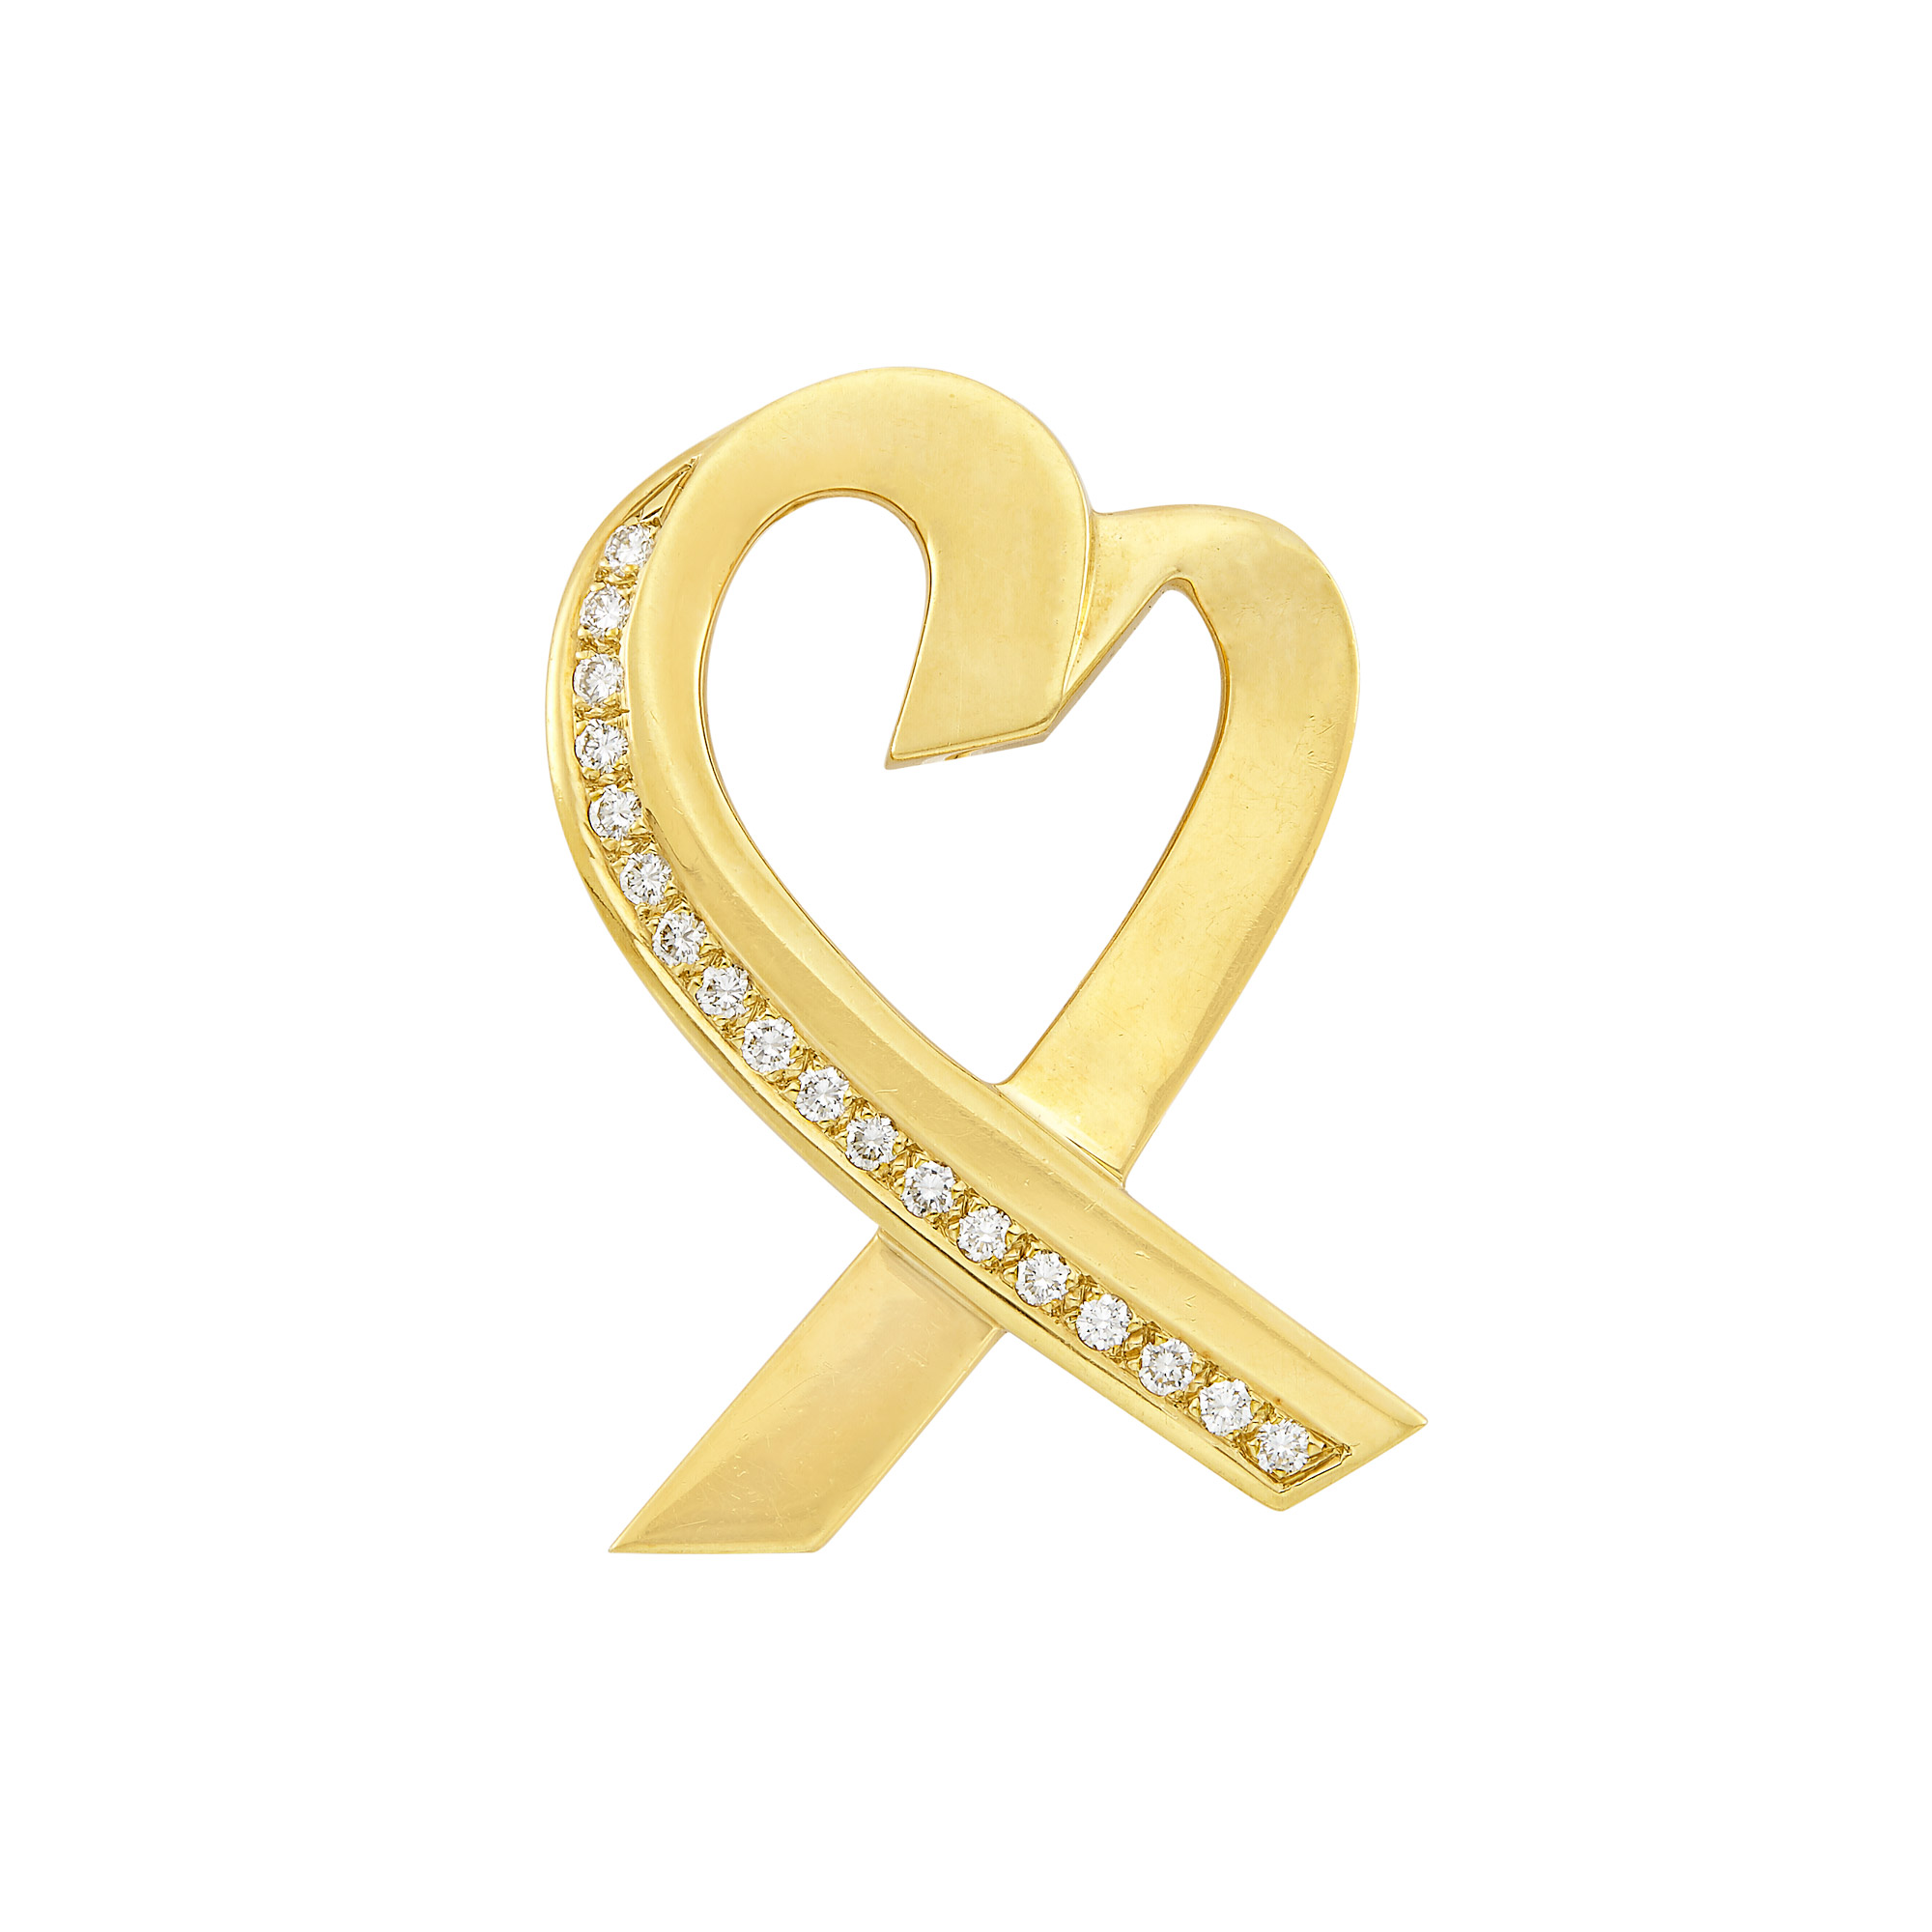 Lot image - Gold and Diamond Loving Heart Brooch, Tiffany & Co.